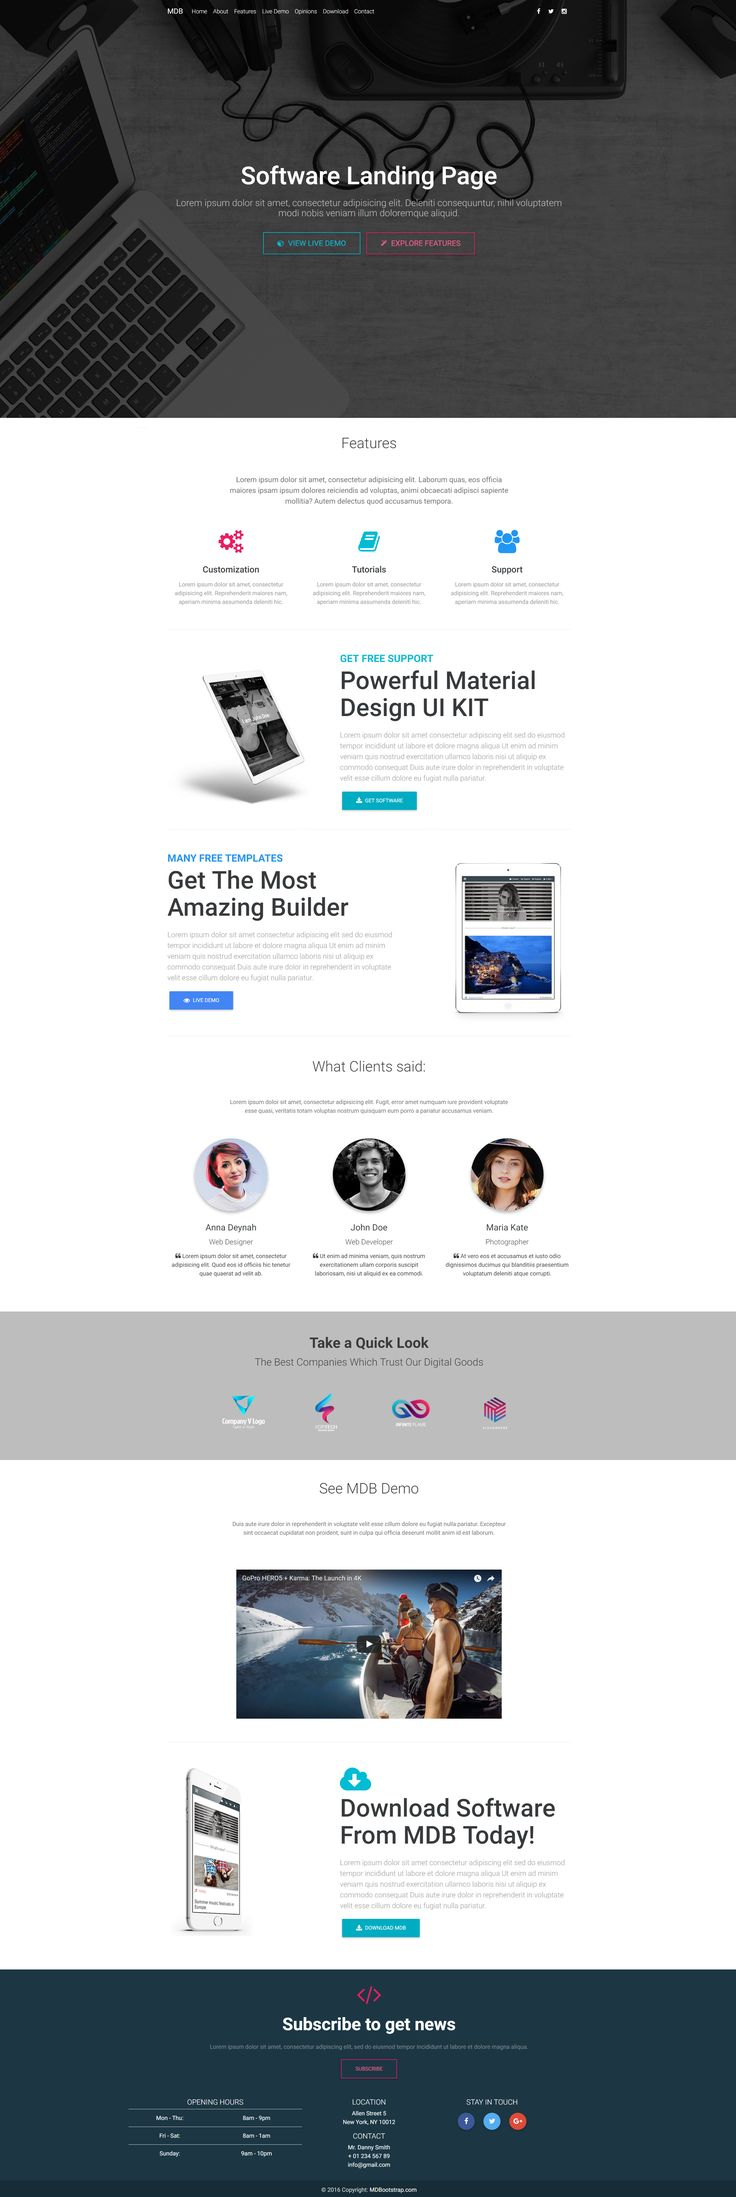 Software Landing Page Template created with Material Design for Bootstrap